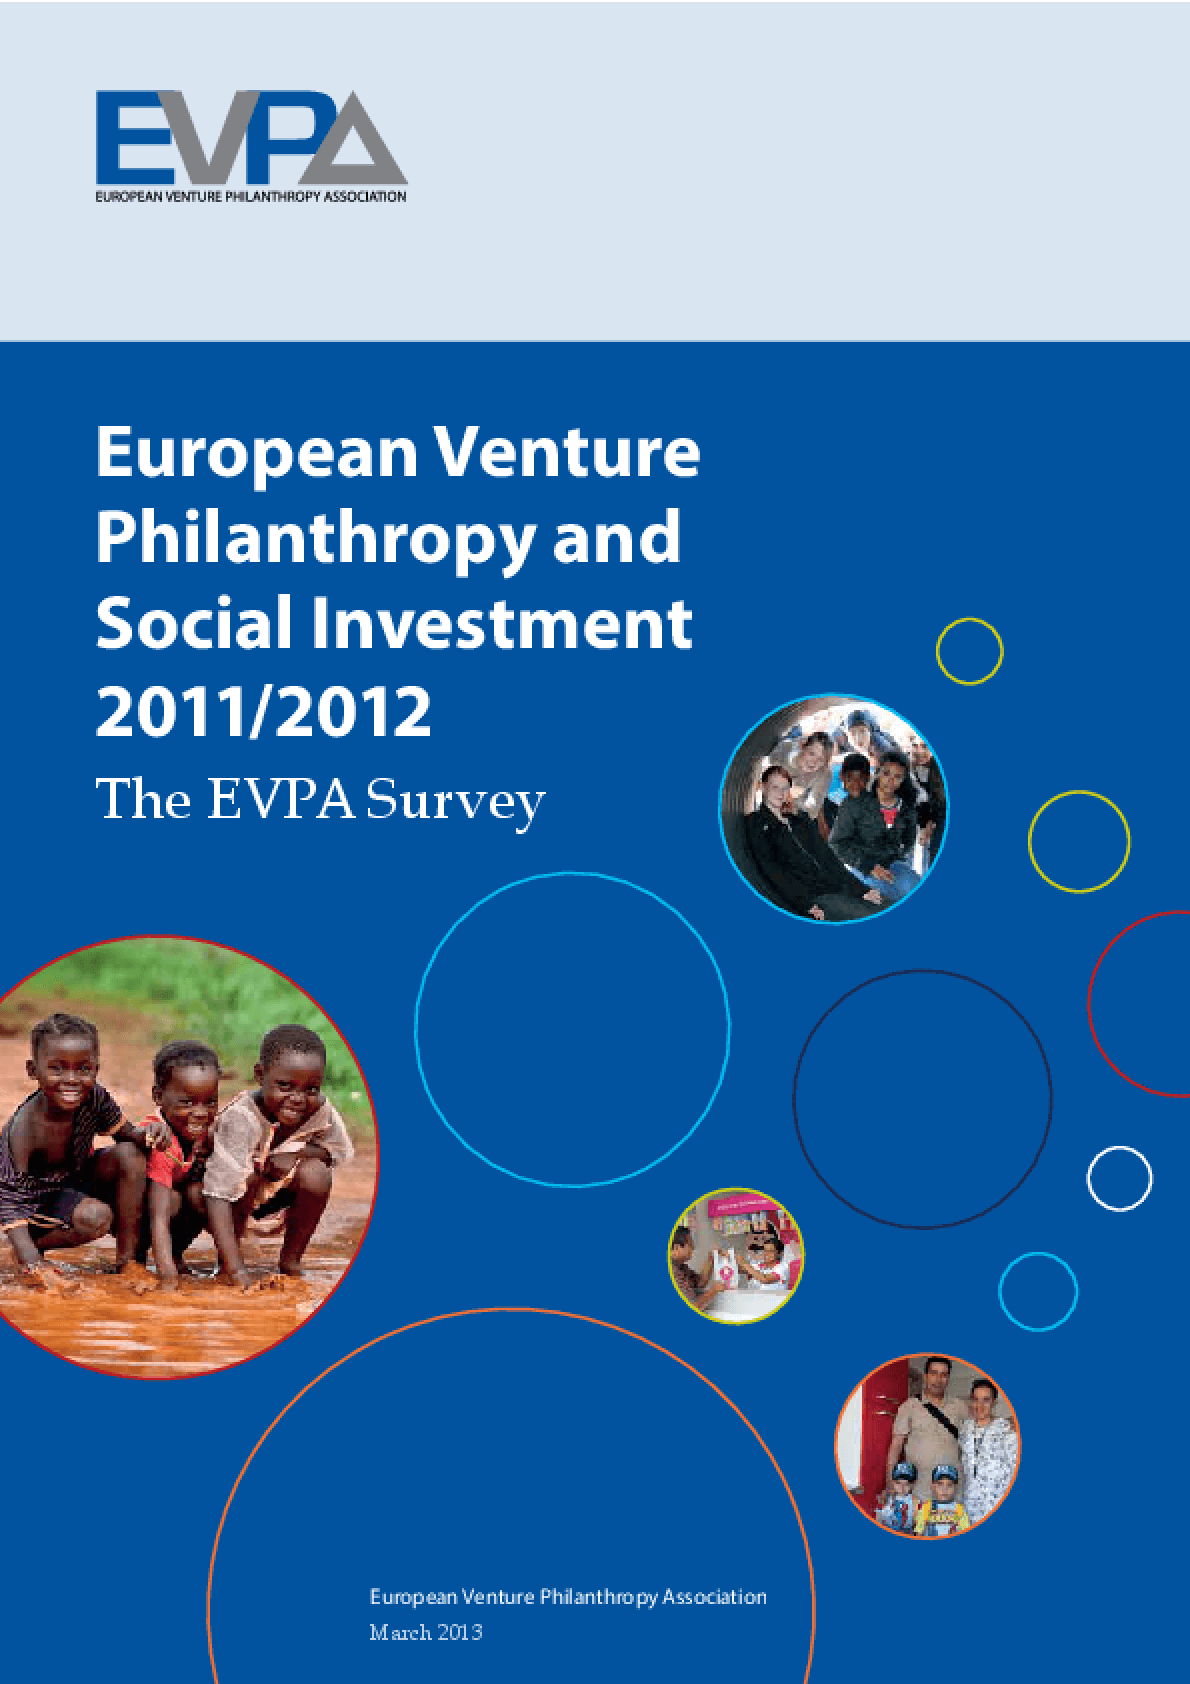 European Venture Philanthropy and Social Investment 2011/2012: The EVPA Survey